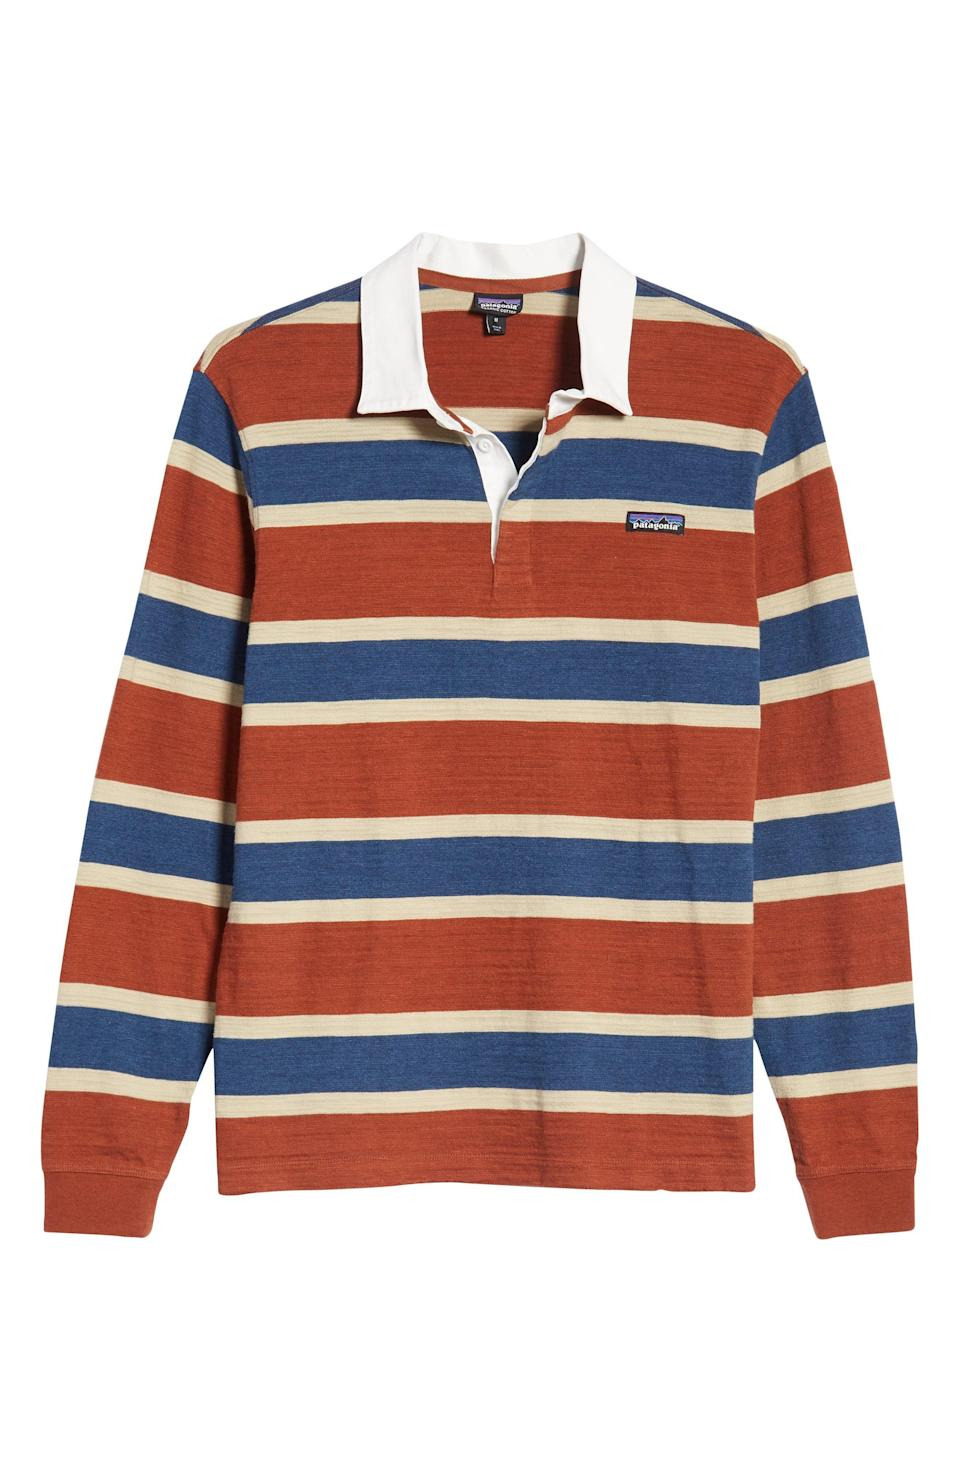 """<p><strong>PATAGONIA</strong></p><p>nordstrom.com</p><p><strong>$99.00</strong></p><p><a href=""""https://go.redirectingat.com?id=74968X1596630&url=https%3A%2F%2Fshop.nordstrom.com%2Fs%2Fpatagonia-rugby-stripe-polo-shirt%2F5242316&sref=https%3A%2F%2Fwww.esquire.com%2Fstyle%2Fmens-fashion%2Fg28074063%2Fbest-rugby-shirts%2F"""" rel=""""nofollow noopener"""" target=""""_blank"""" data-ylk=""""slk:Shop Now"""" class=""""link rapid-noclick-resp"""">Shop Now</a></p>"""